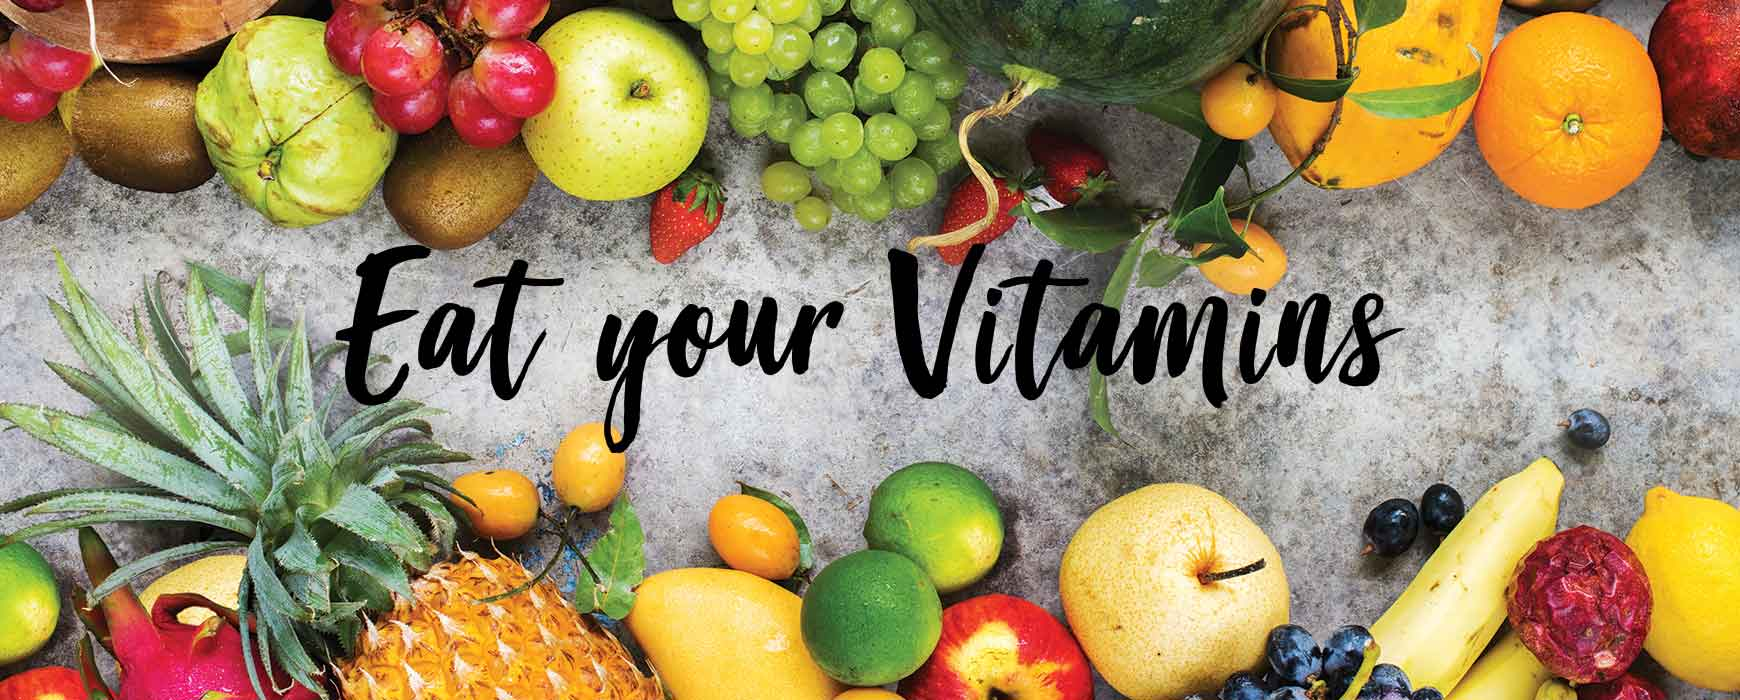 Eat your Vitamins